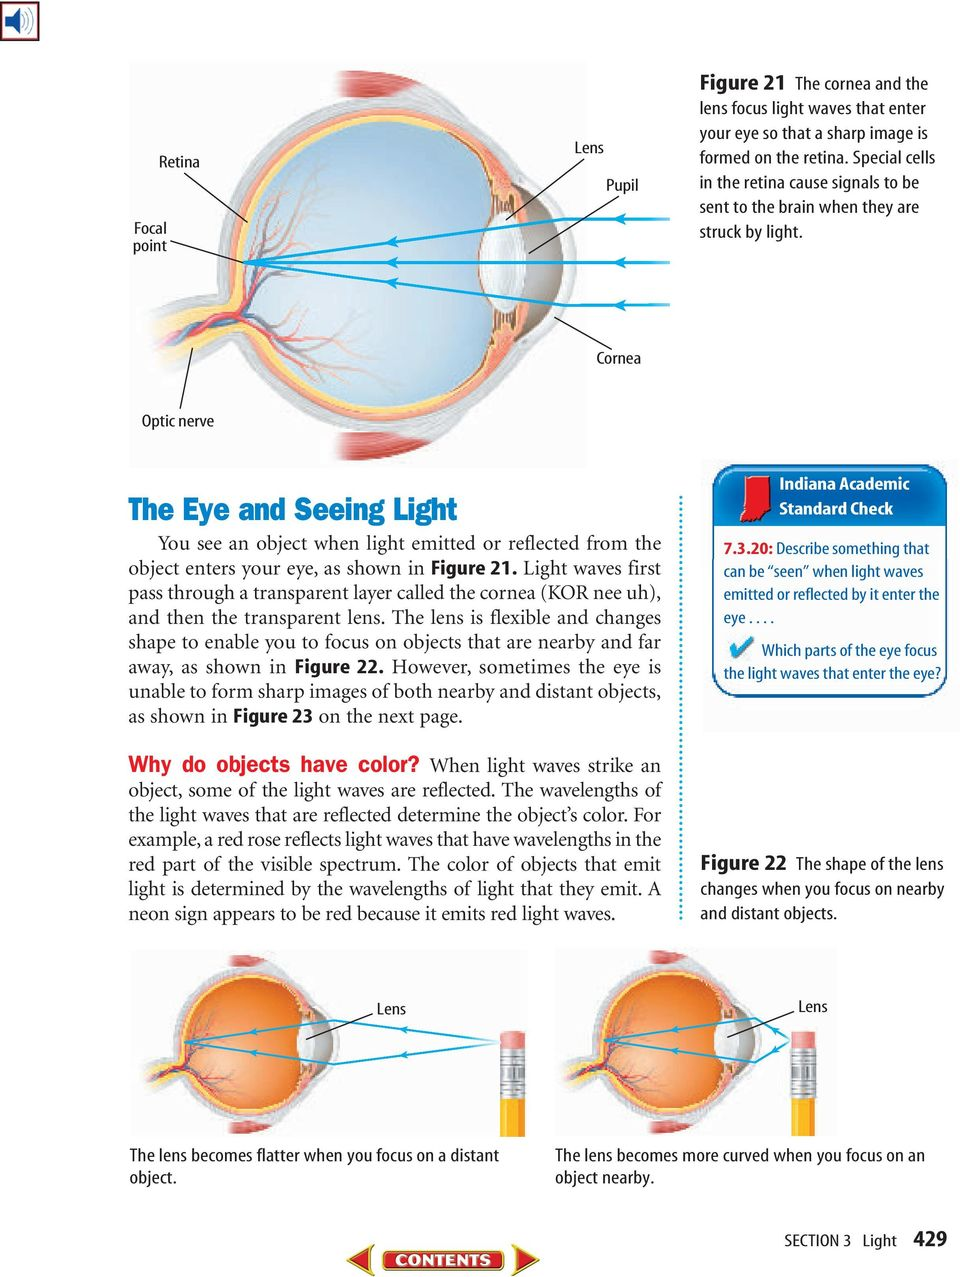 Cornea Optic nerve The Eye and Seeing Light You see an object when light emitted or reflected from the object enters your eye, as shown in Figure 21.